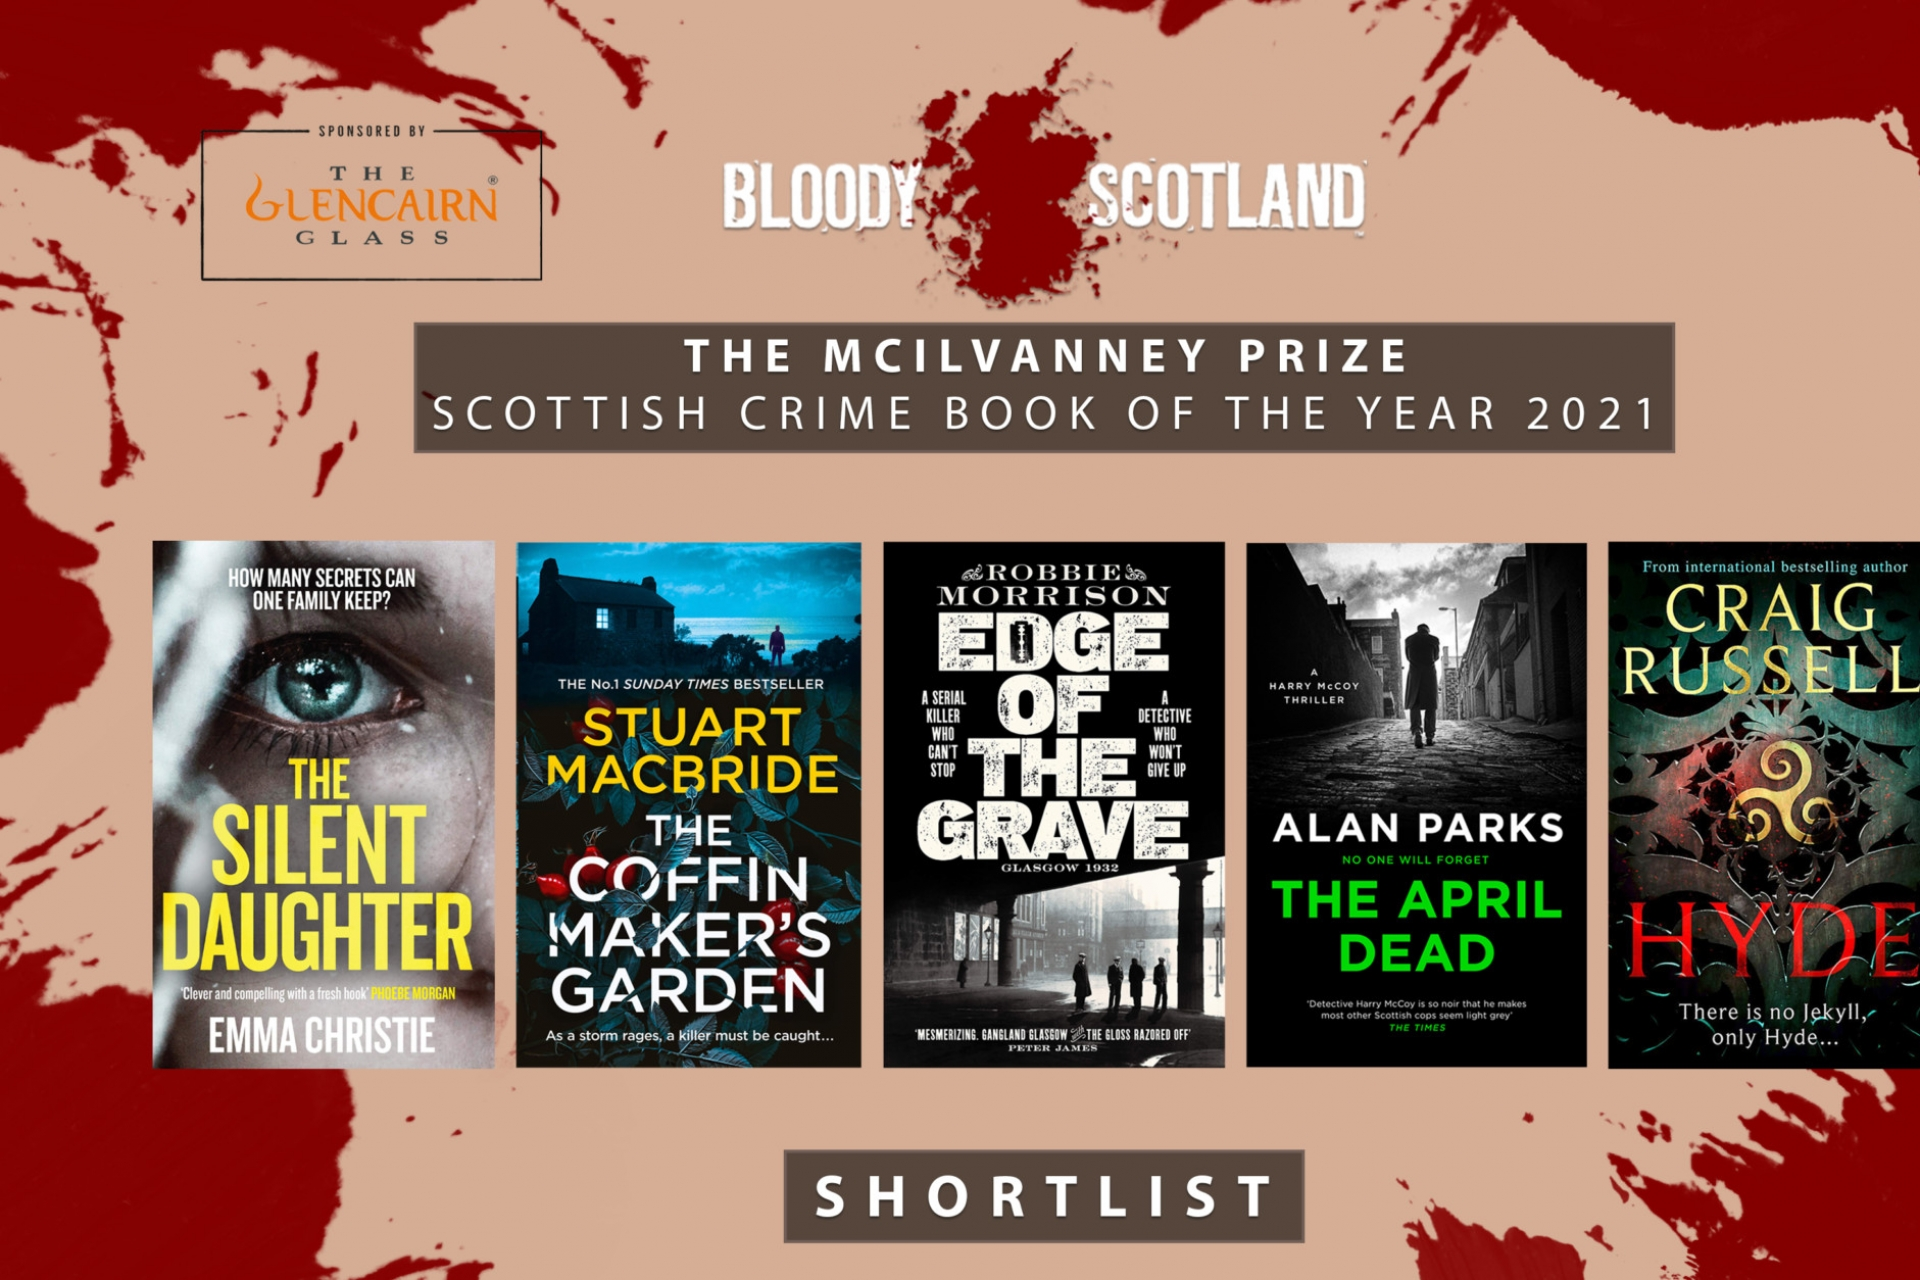 Shortlist for the McIlvanney Prize for Scottish Crime book of the year has been announced